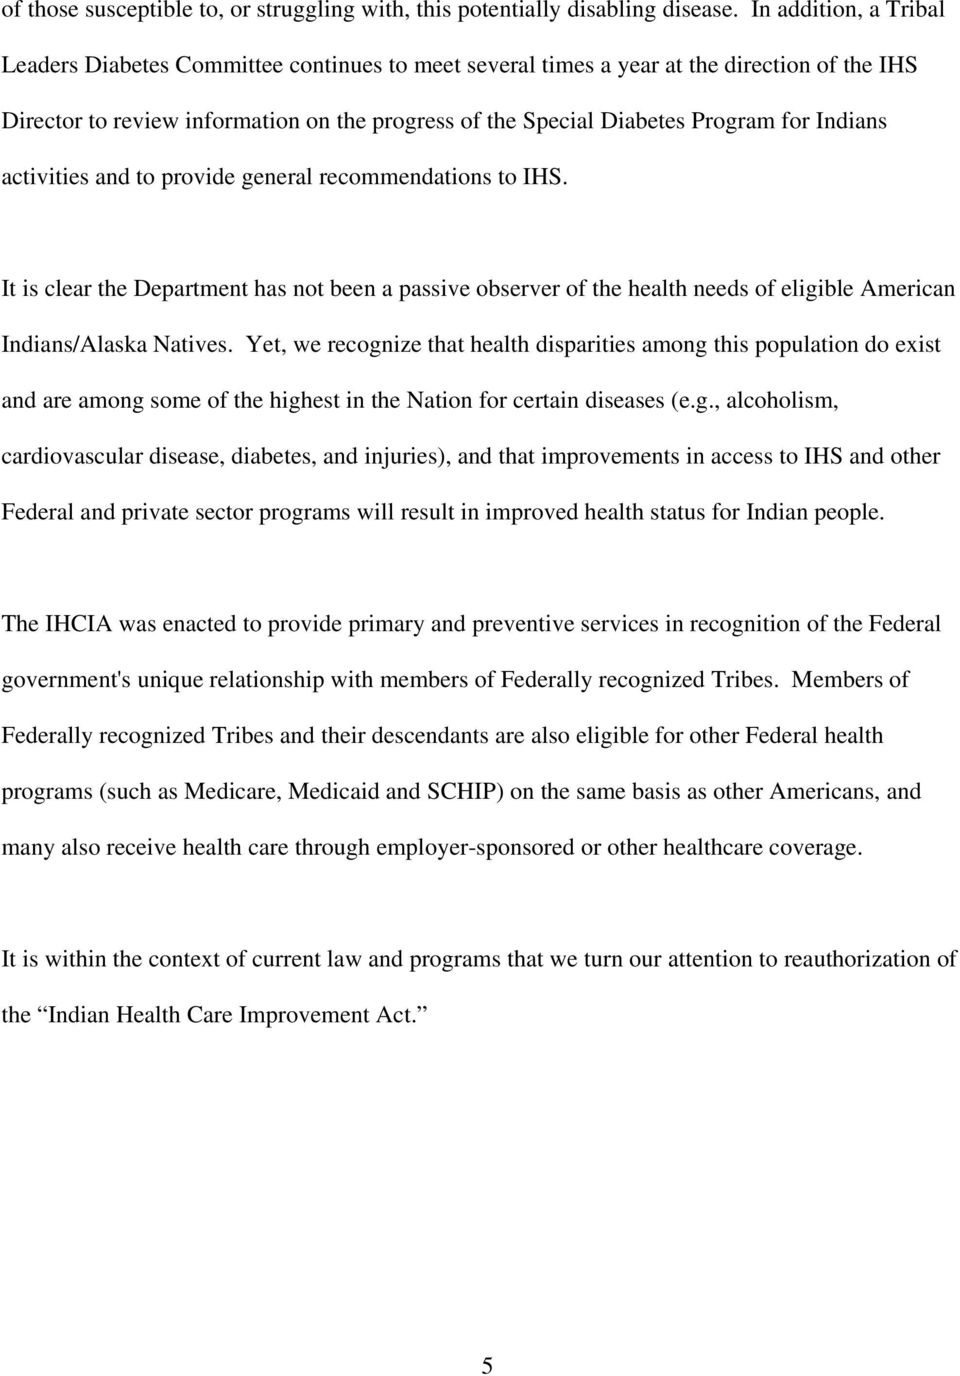 Indians activities and to provide general recommendations to IHS. It is clear the Department has not been a passive observer of the health needs of eligible American Indians/Alaska Natives.